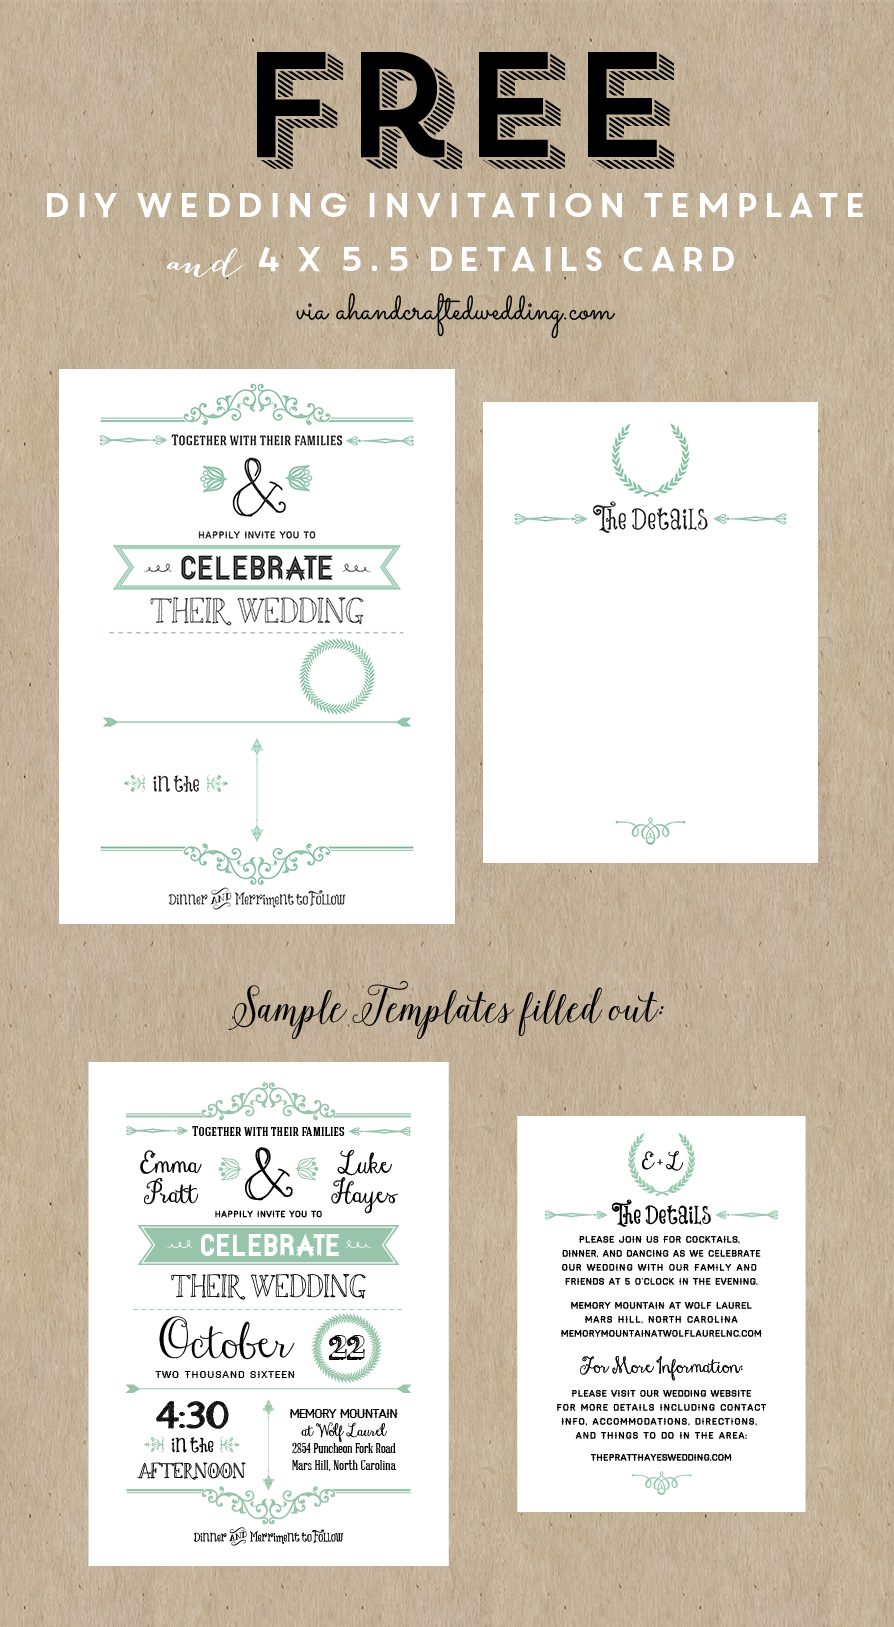 free wedding invitation template via ahandcraftedweddingcom wedding invitation vintageposter - Free Rustic Wedding Invitation Templates